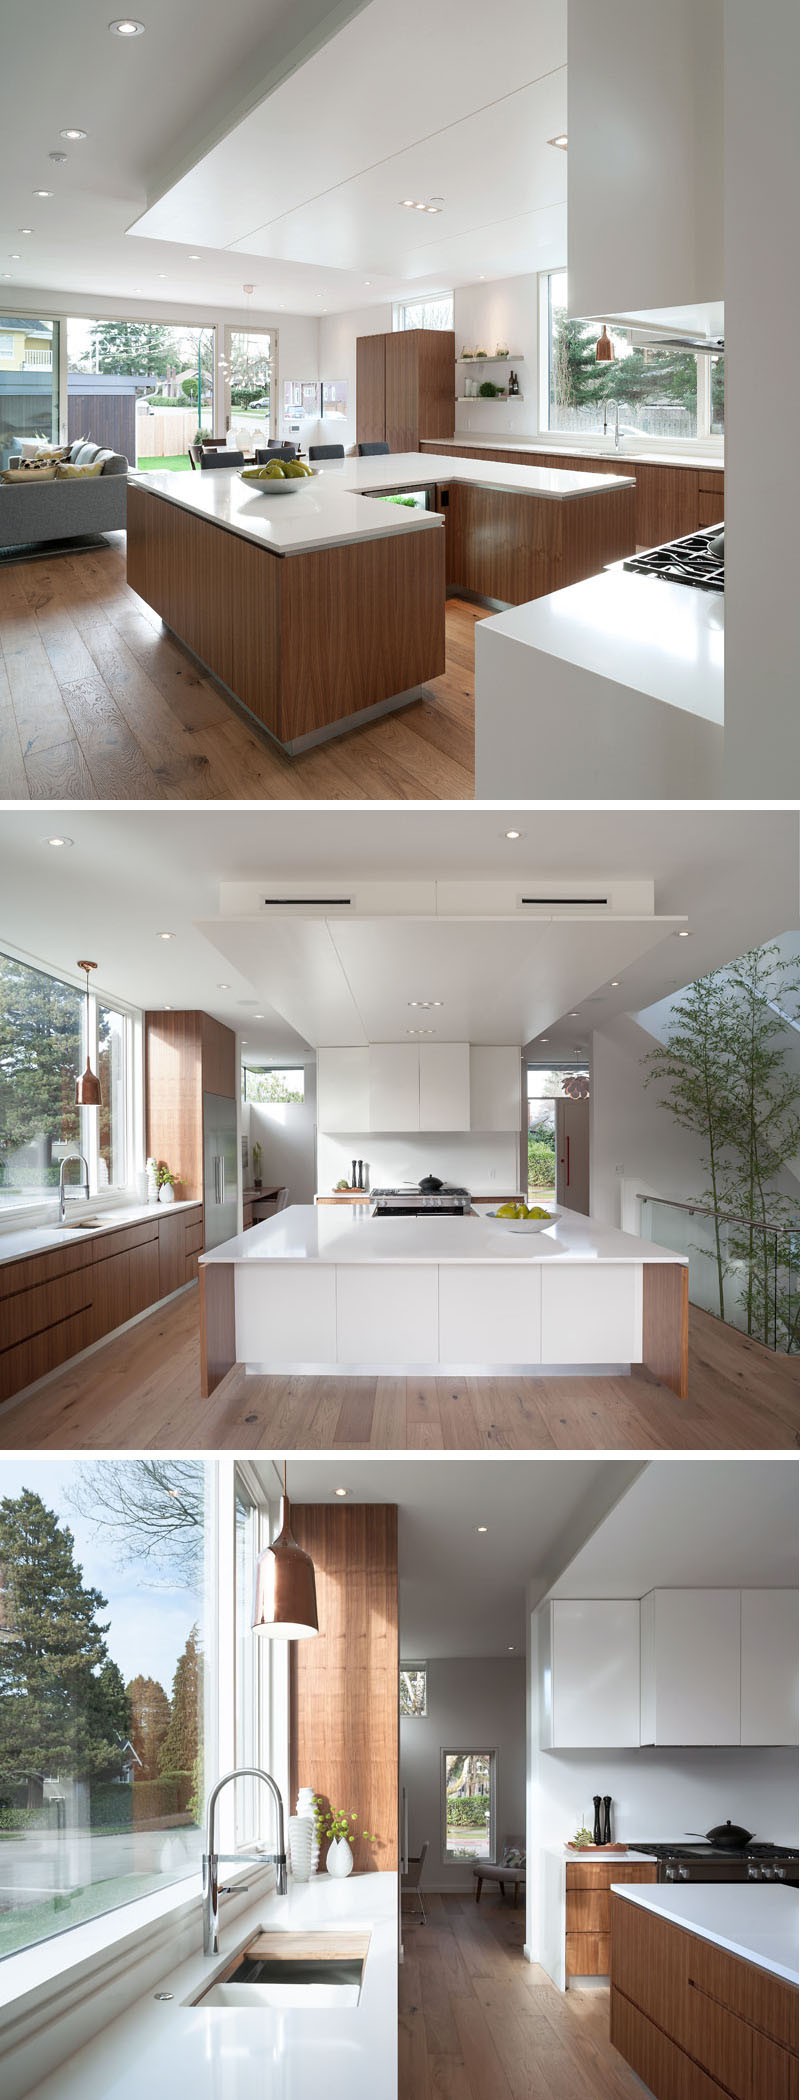 The kitchen island in this kitchen has been designed in a 'U' shape, giving the homeowners plenty of space for food prep, and making it easy to socialize while cooking.